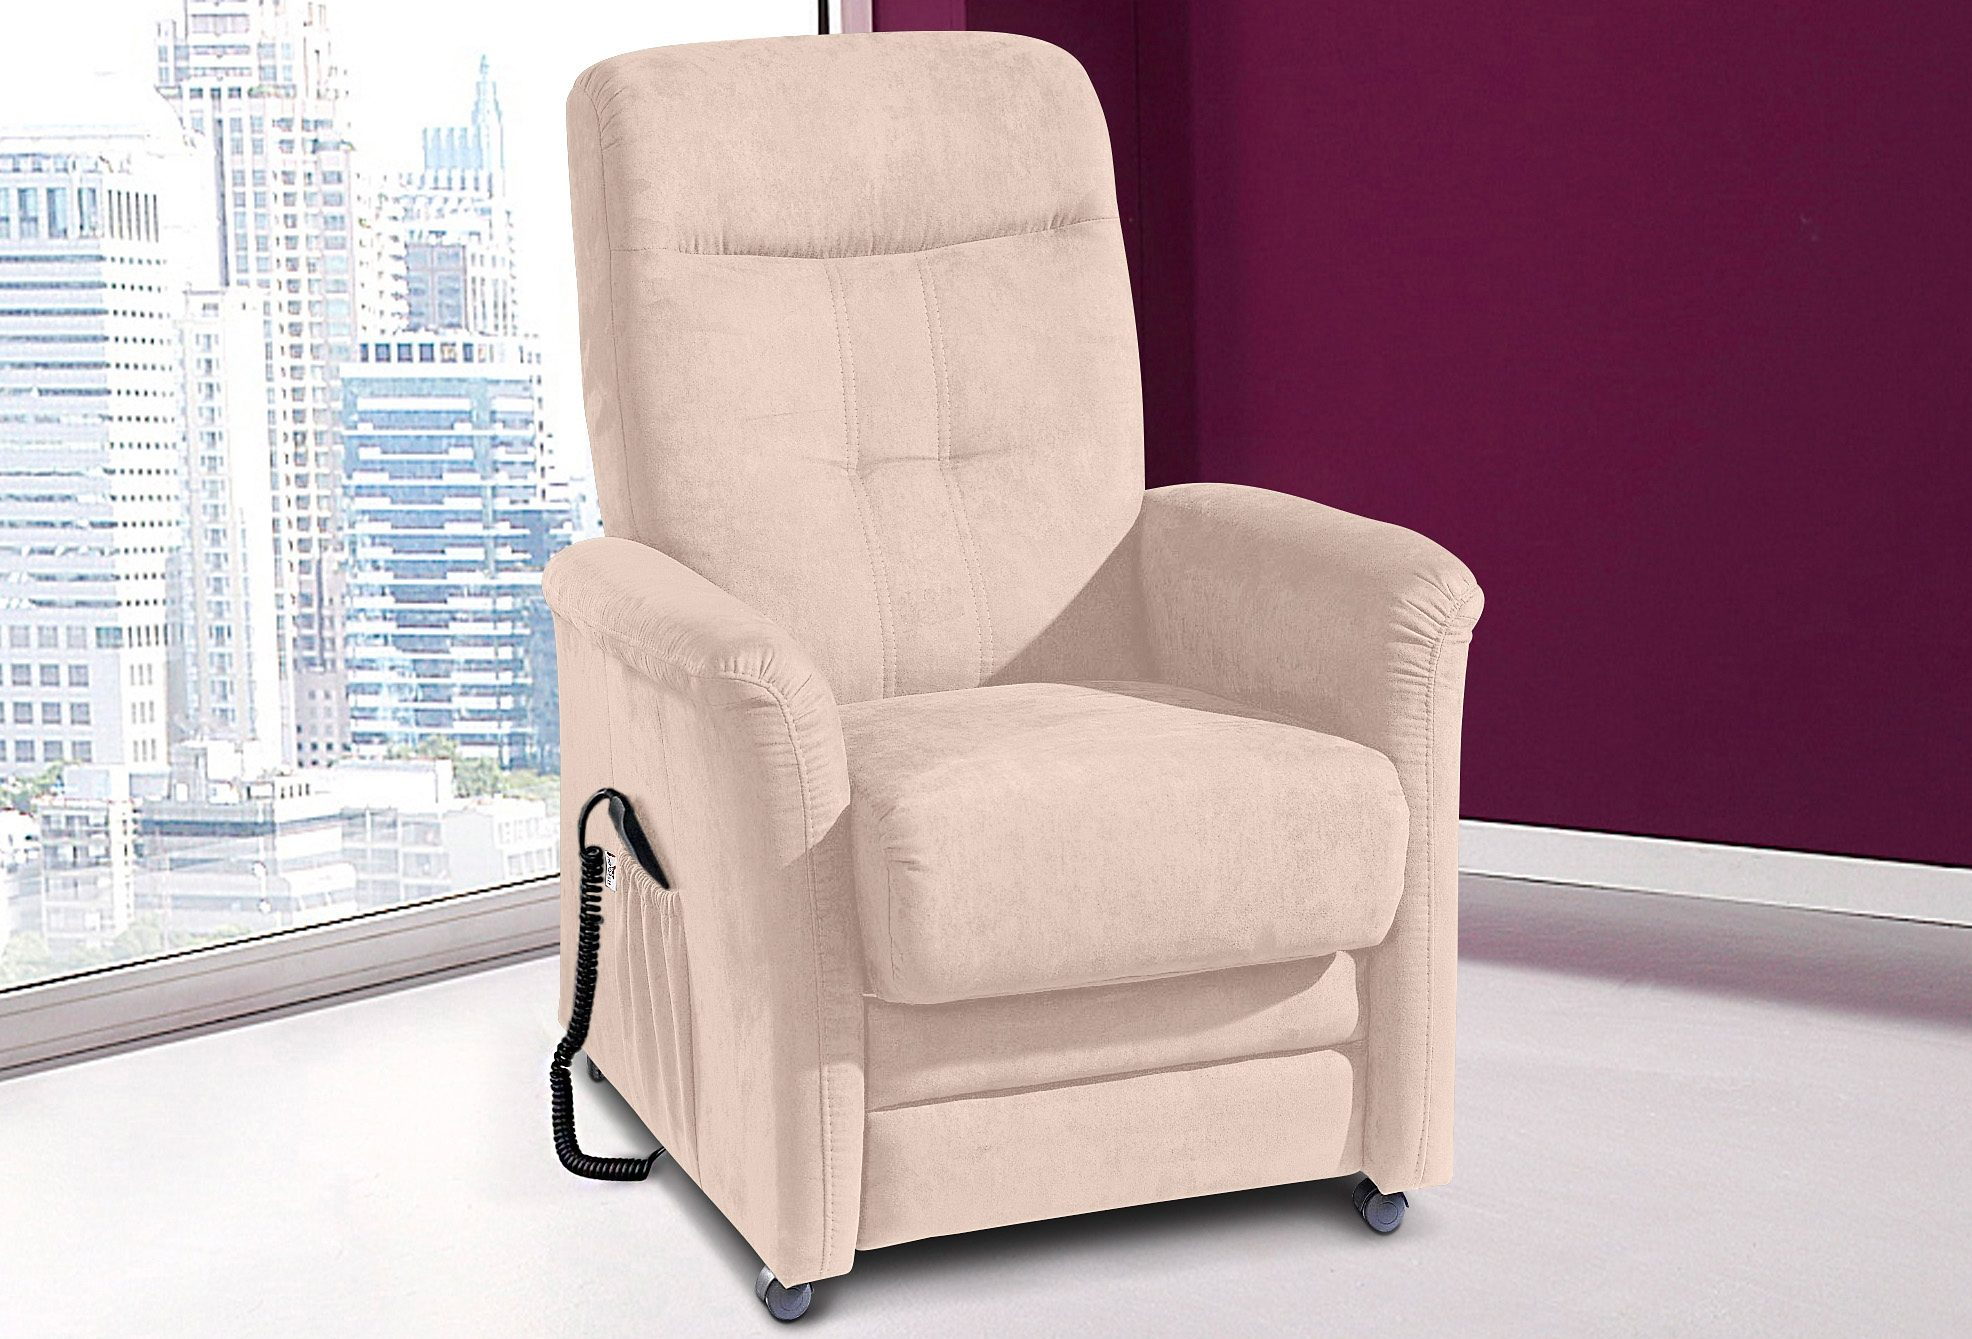 sit&more TV-Sessel | Wohnzimmer > Sessel > Fernsehsessel | Tv | SIT&MORE